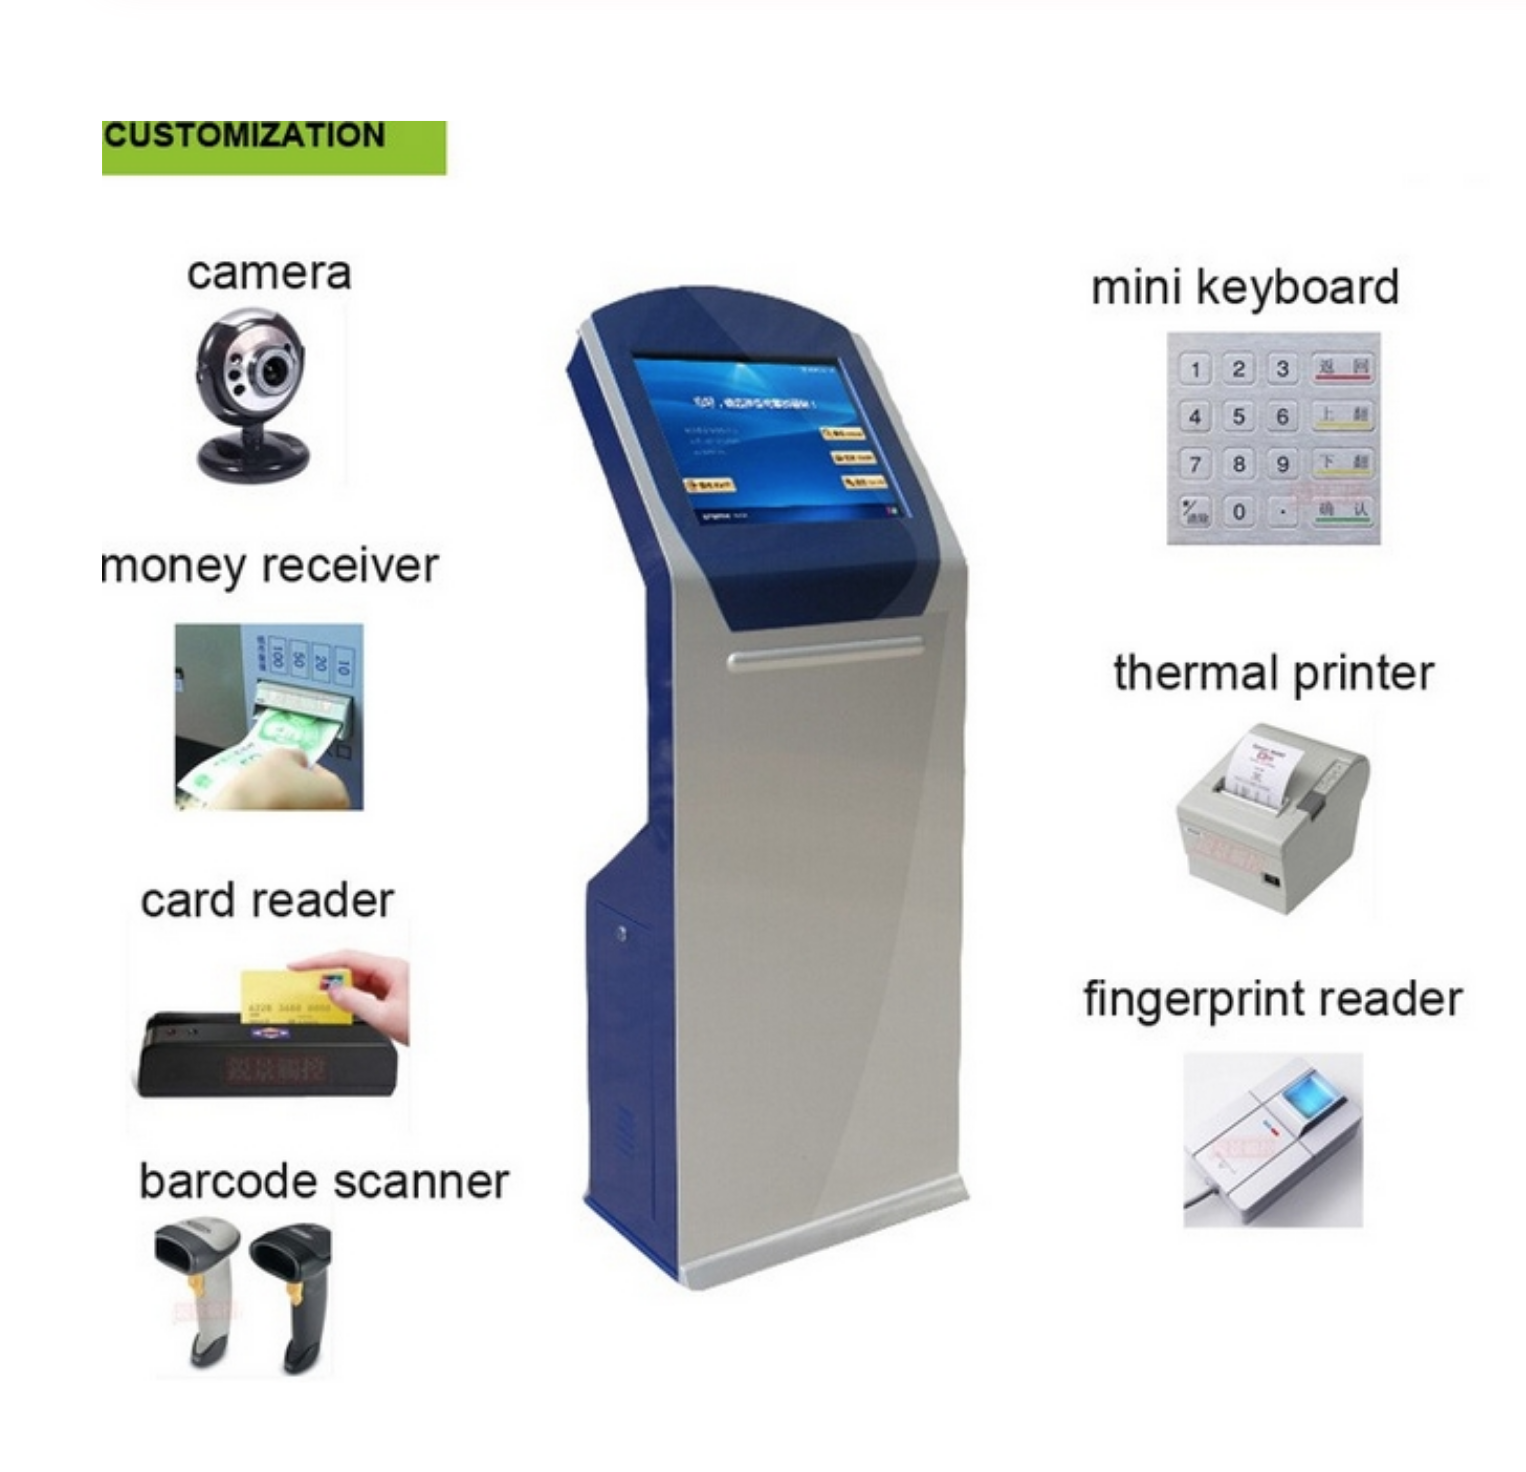 19 Inch All In One Touch Screen Kiosk Android Self Service Ticket Dispenser Queue Management Kiosk